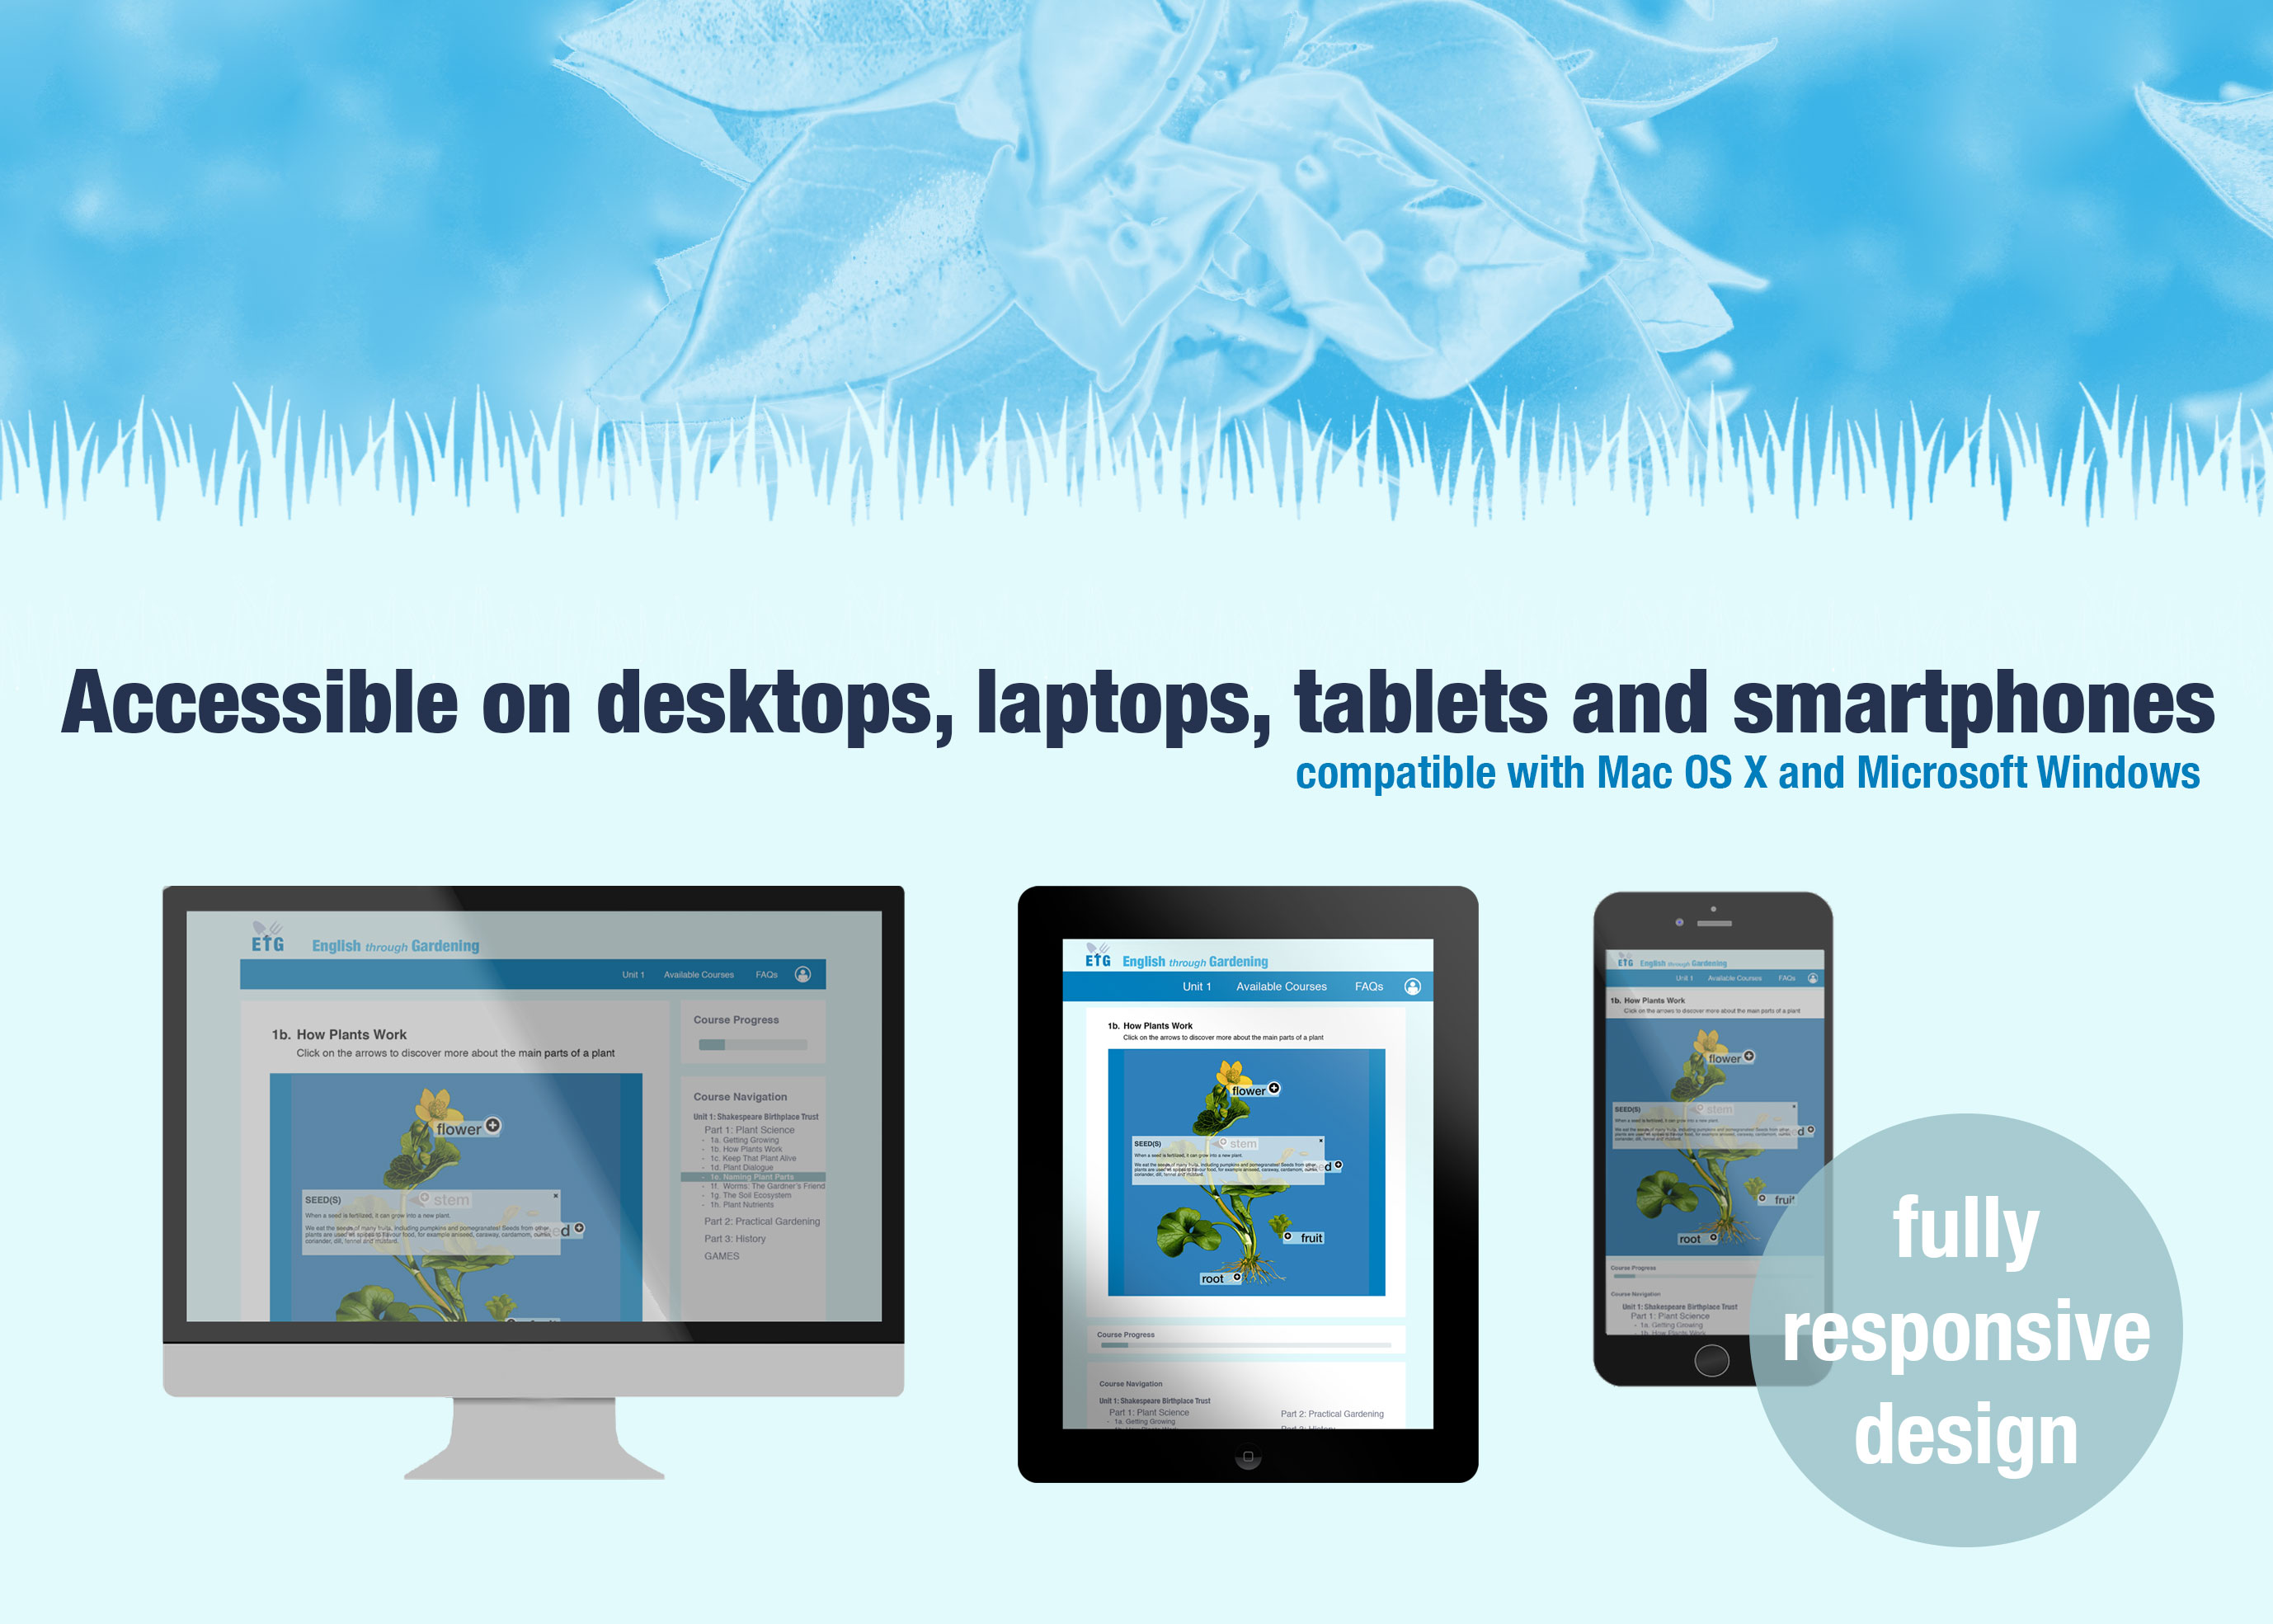 ETG - Accessible on desktops, laptops, tablets and smartphones